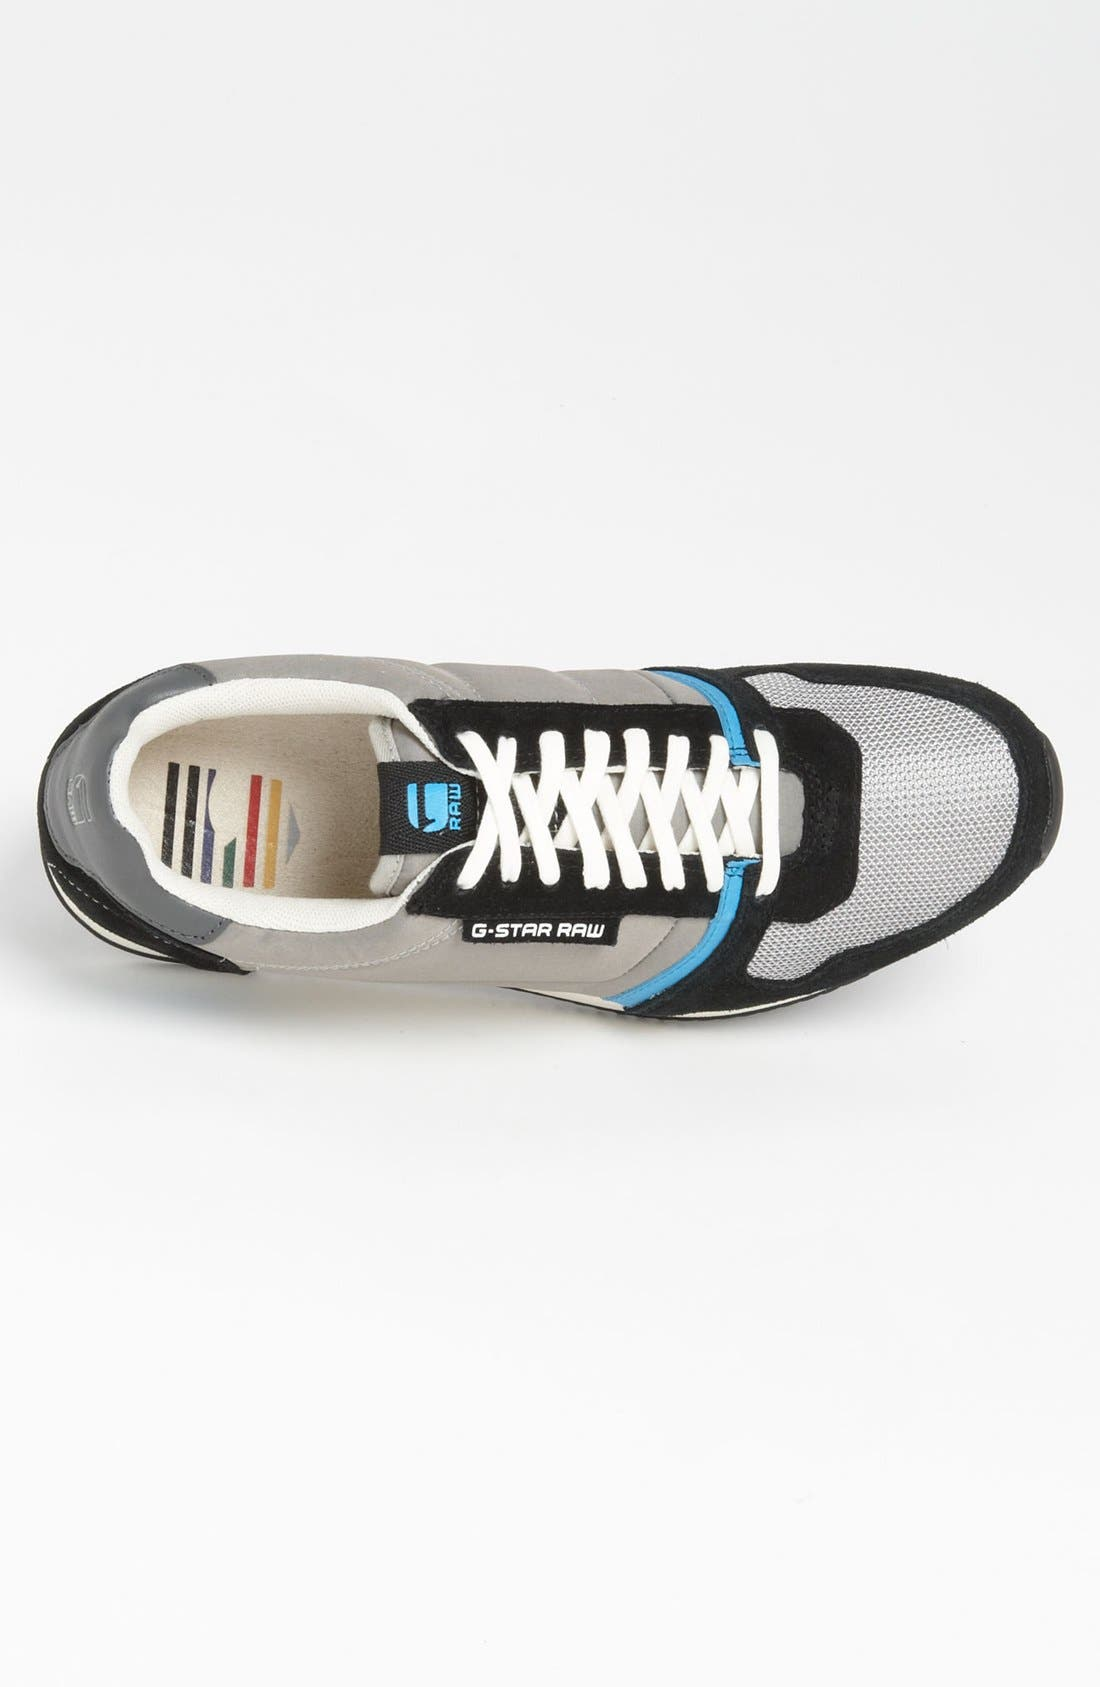 Alternate Image 3  - G-Star Raw 'Track Futura' Sneaker (Men)